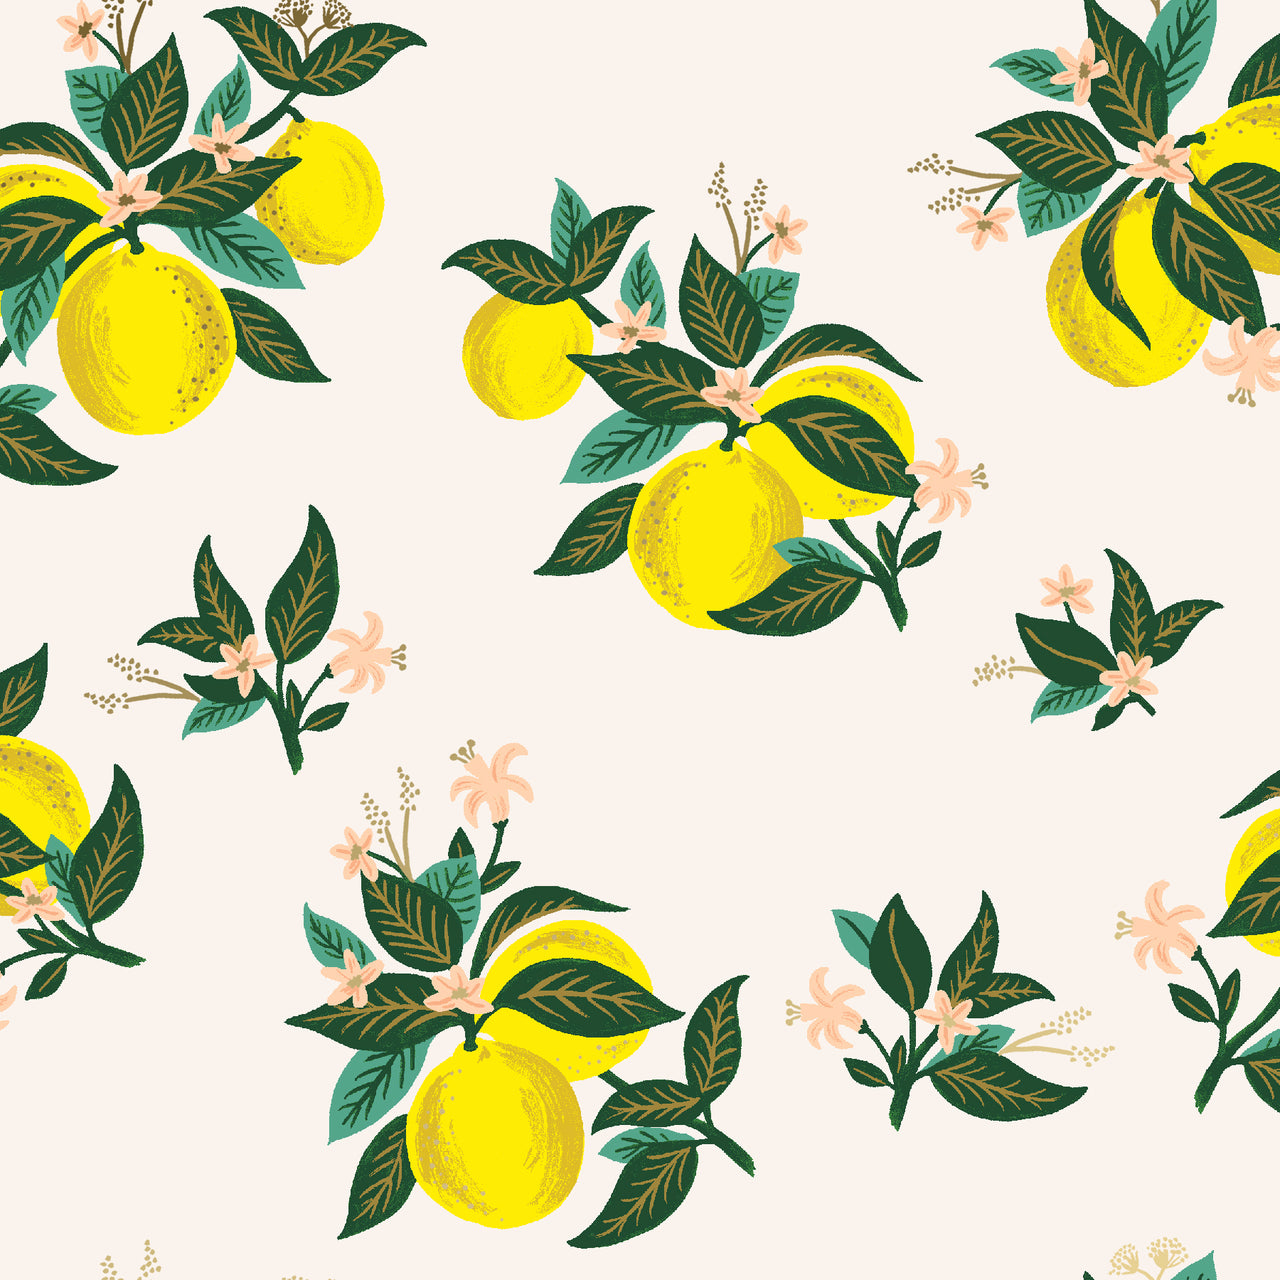 Primavera by Rifle Paper Co : Citrus Blooms in Lemon Metallic : Cotton and Steel